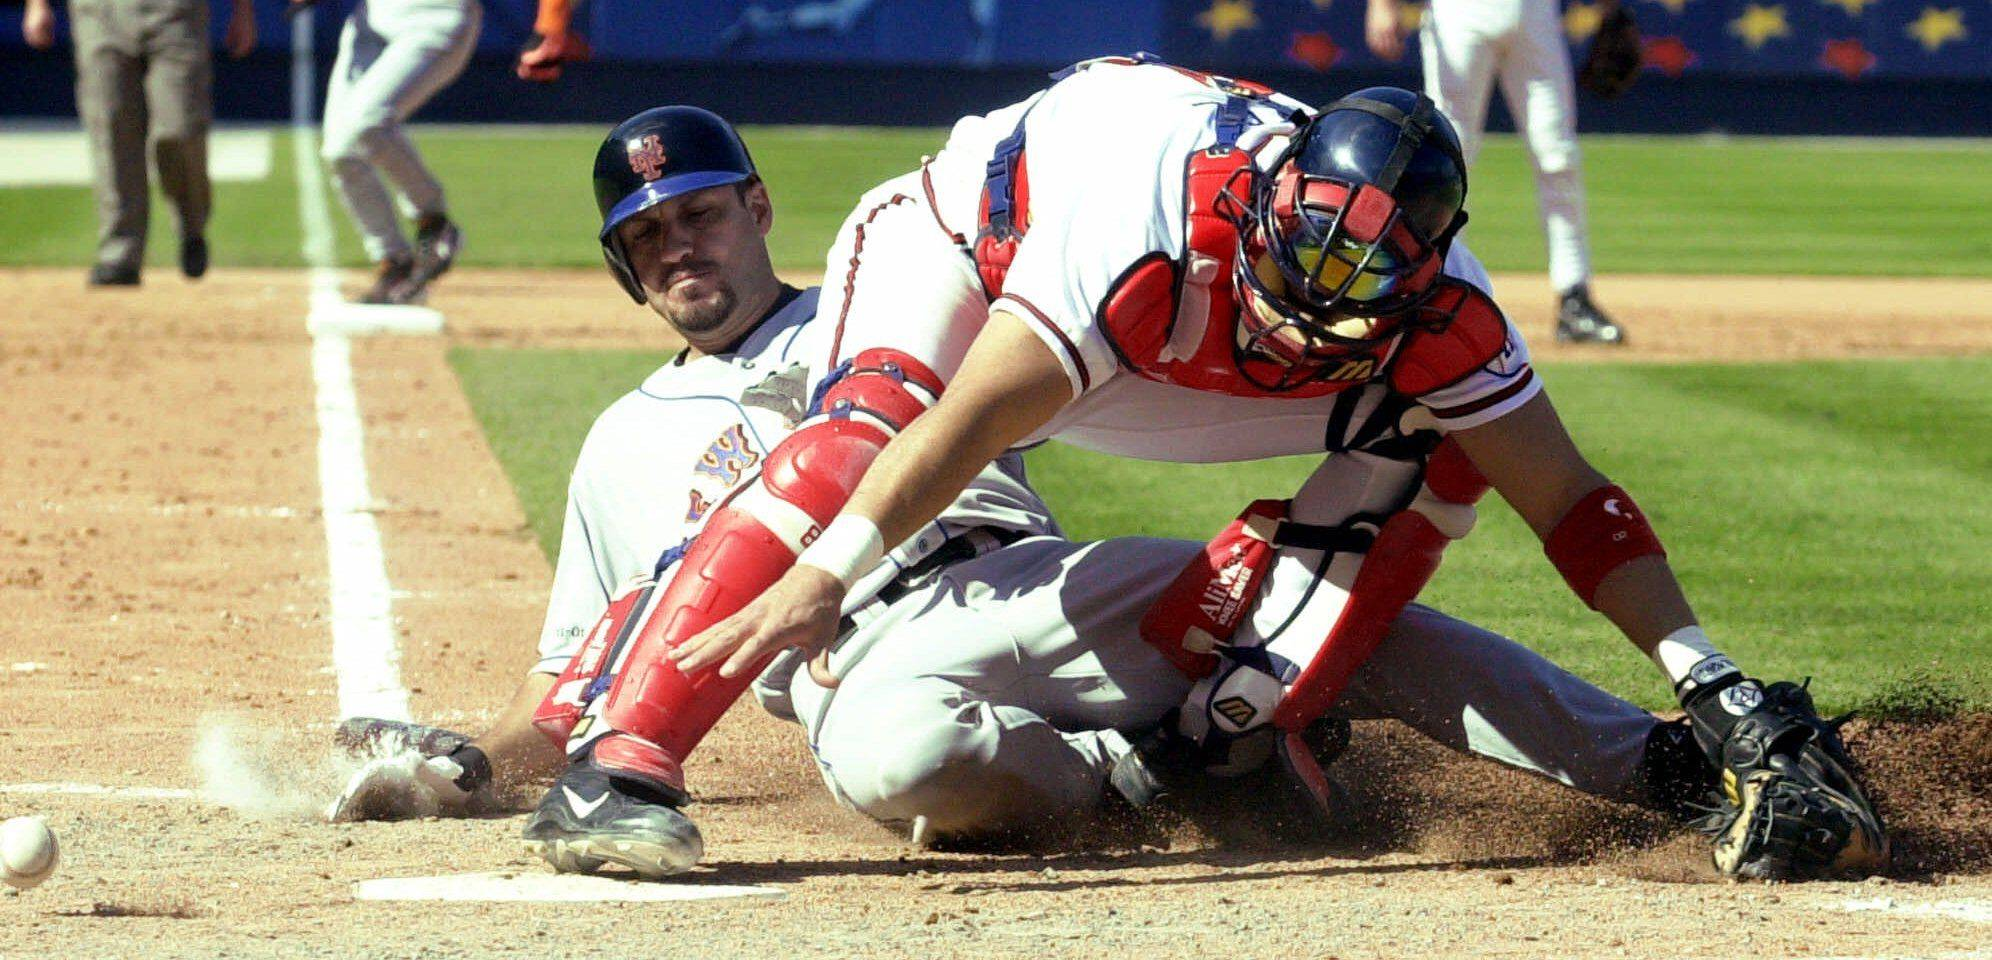 New York Mets Robin Ventura scores in the eighth inning as the ball gets away from Atlanta Braves catcher Javy Lopez at Turner Field in Atlanta Sunday, Sept. 30, 2001. Lopez injured his ankle on the play and left the game.